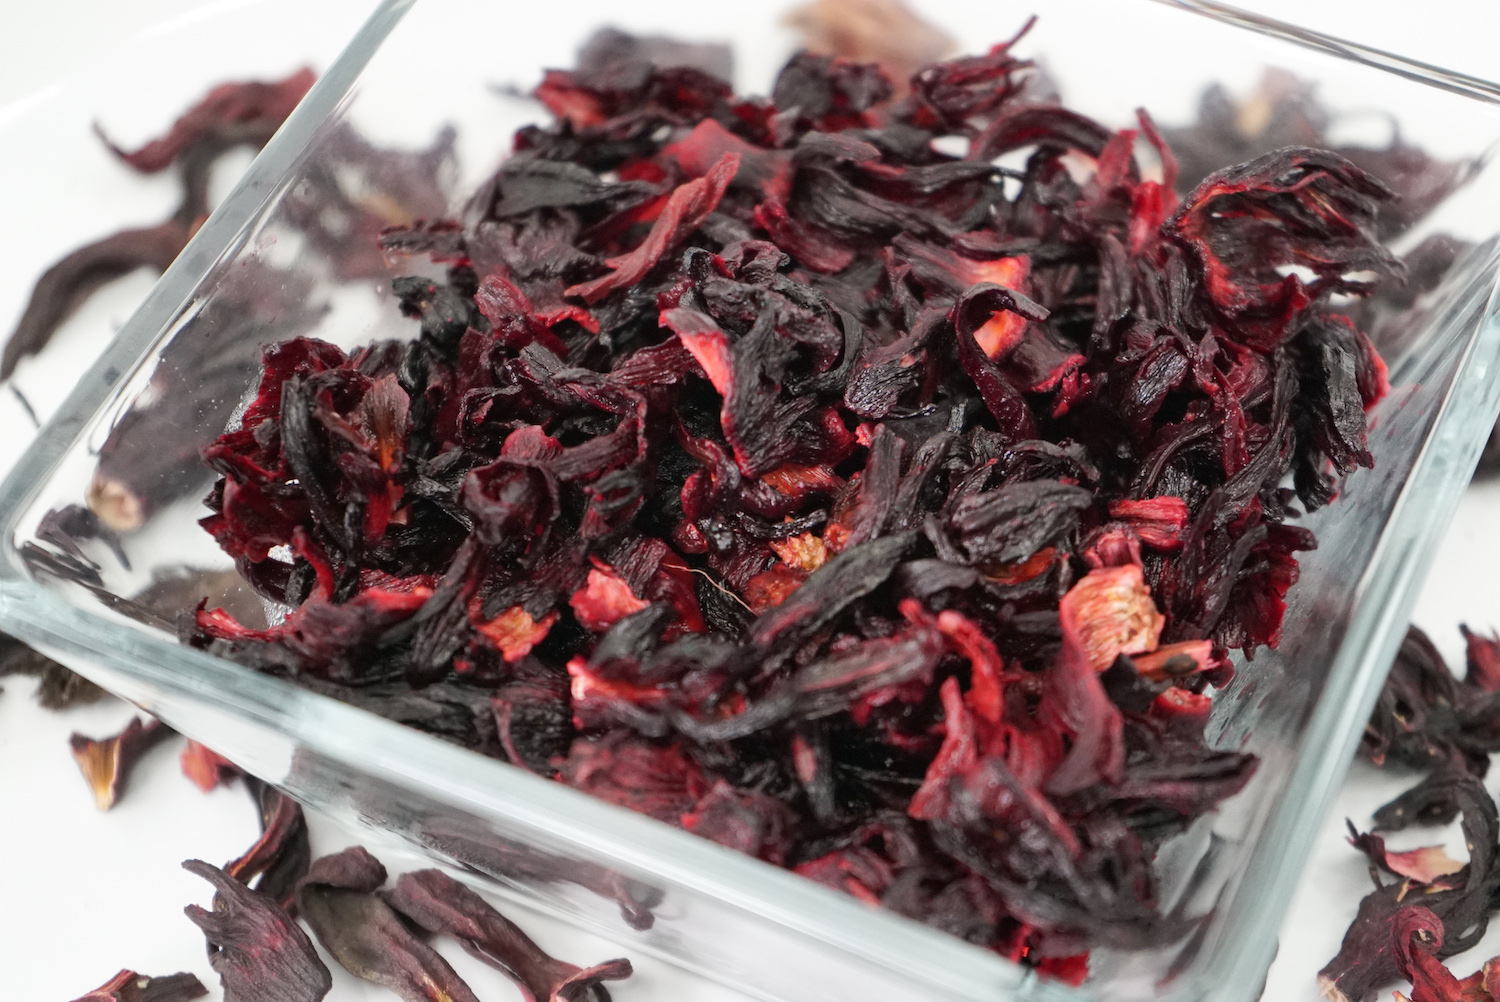 Sorrel is made from brewing the flower petals of the roselle plant, a type of hibiscus that is native to India. The plant was brought to Africa and then to the New World. The drink is made by boiling the dried petals, above.